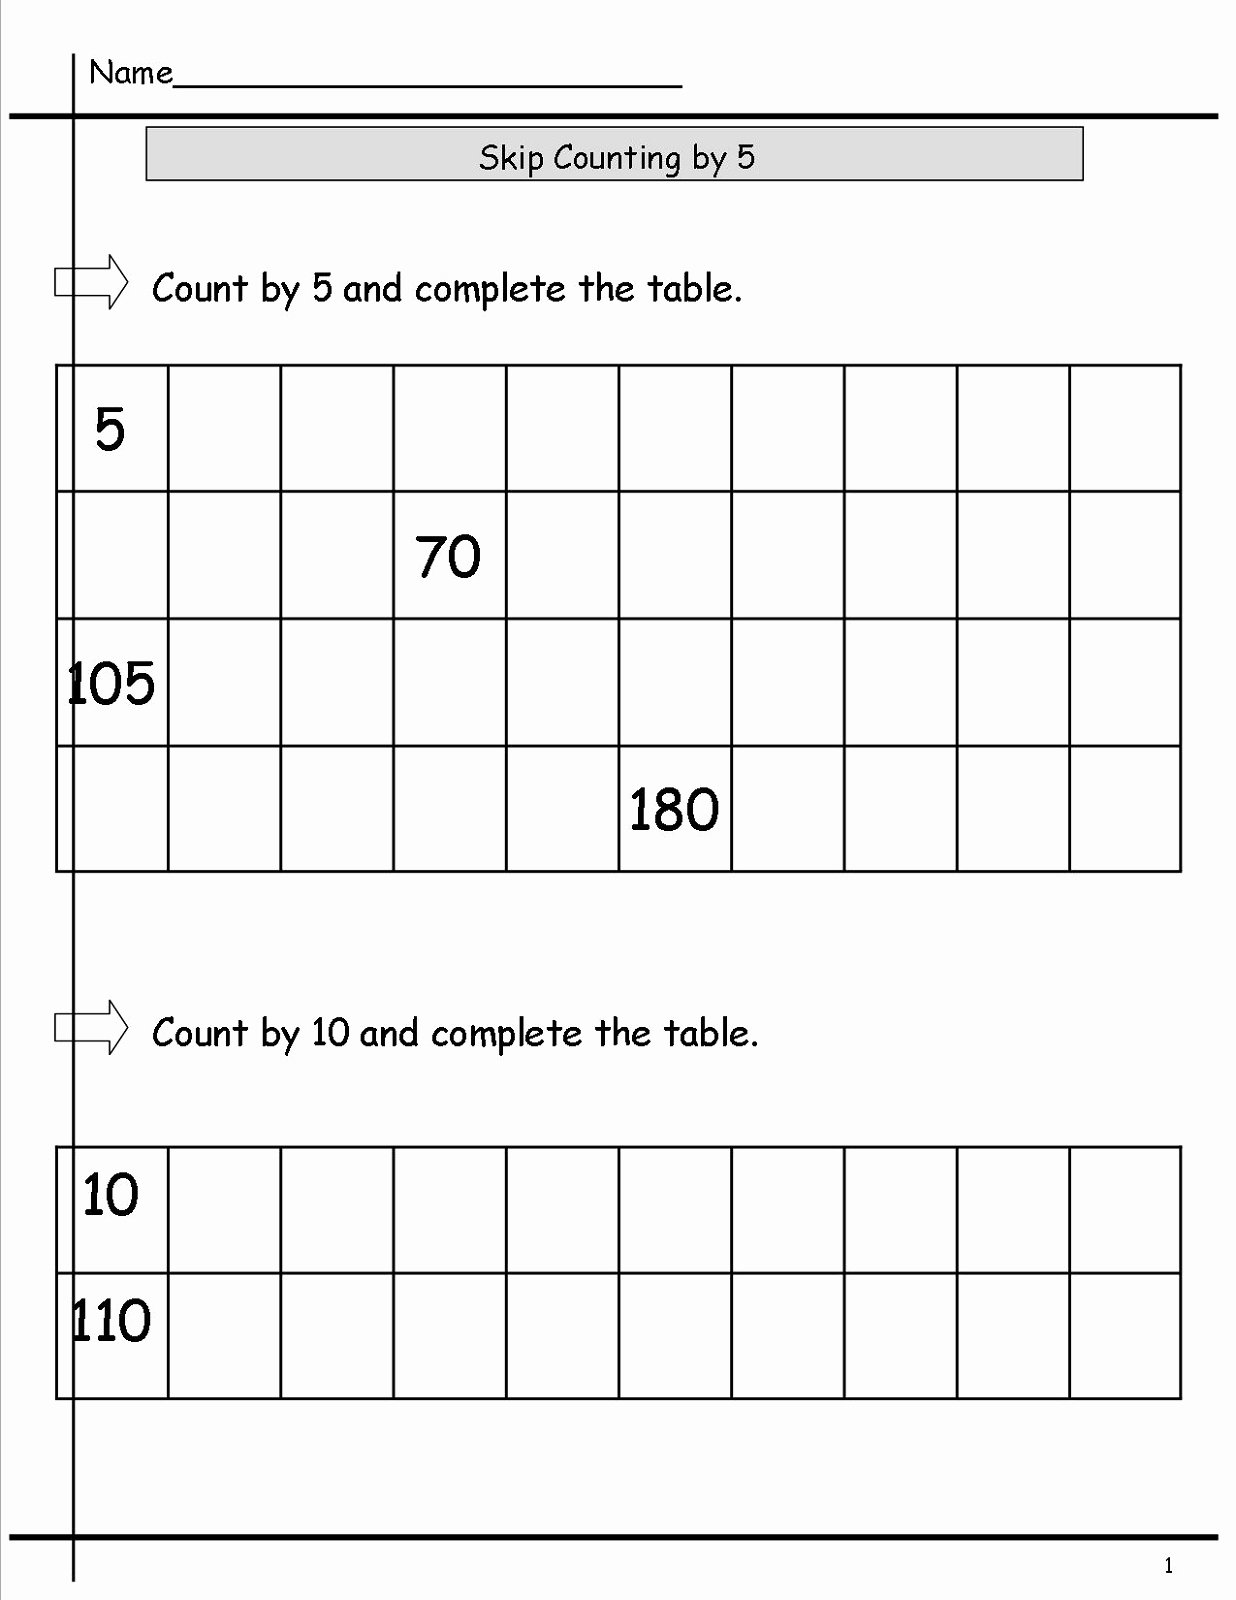 Count by 5s Worksheet Beautiful Count by 5s Worksheets Printable